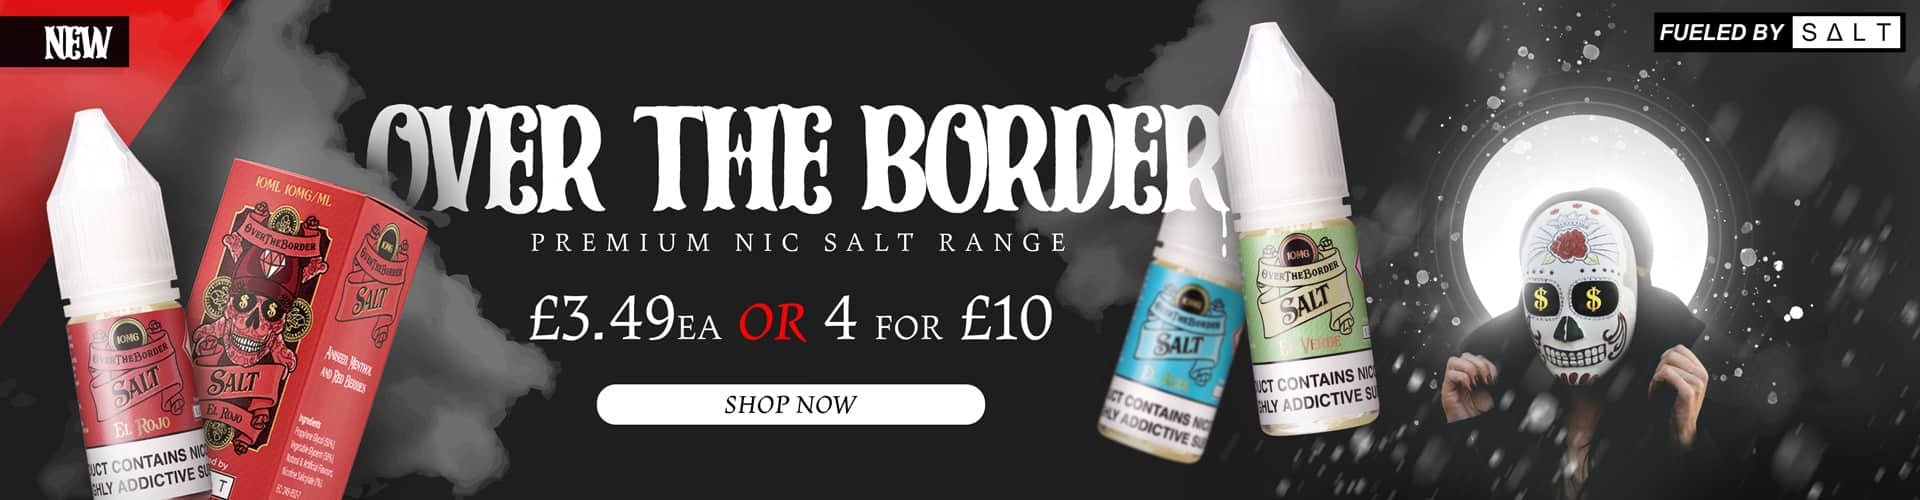 Over The Border Nic Salts - NOW 4 for £10